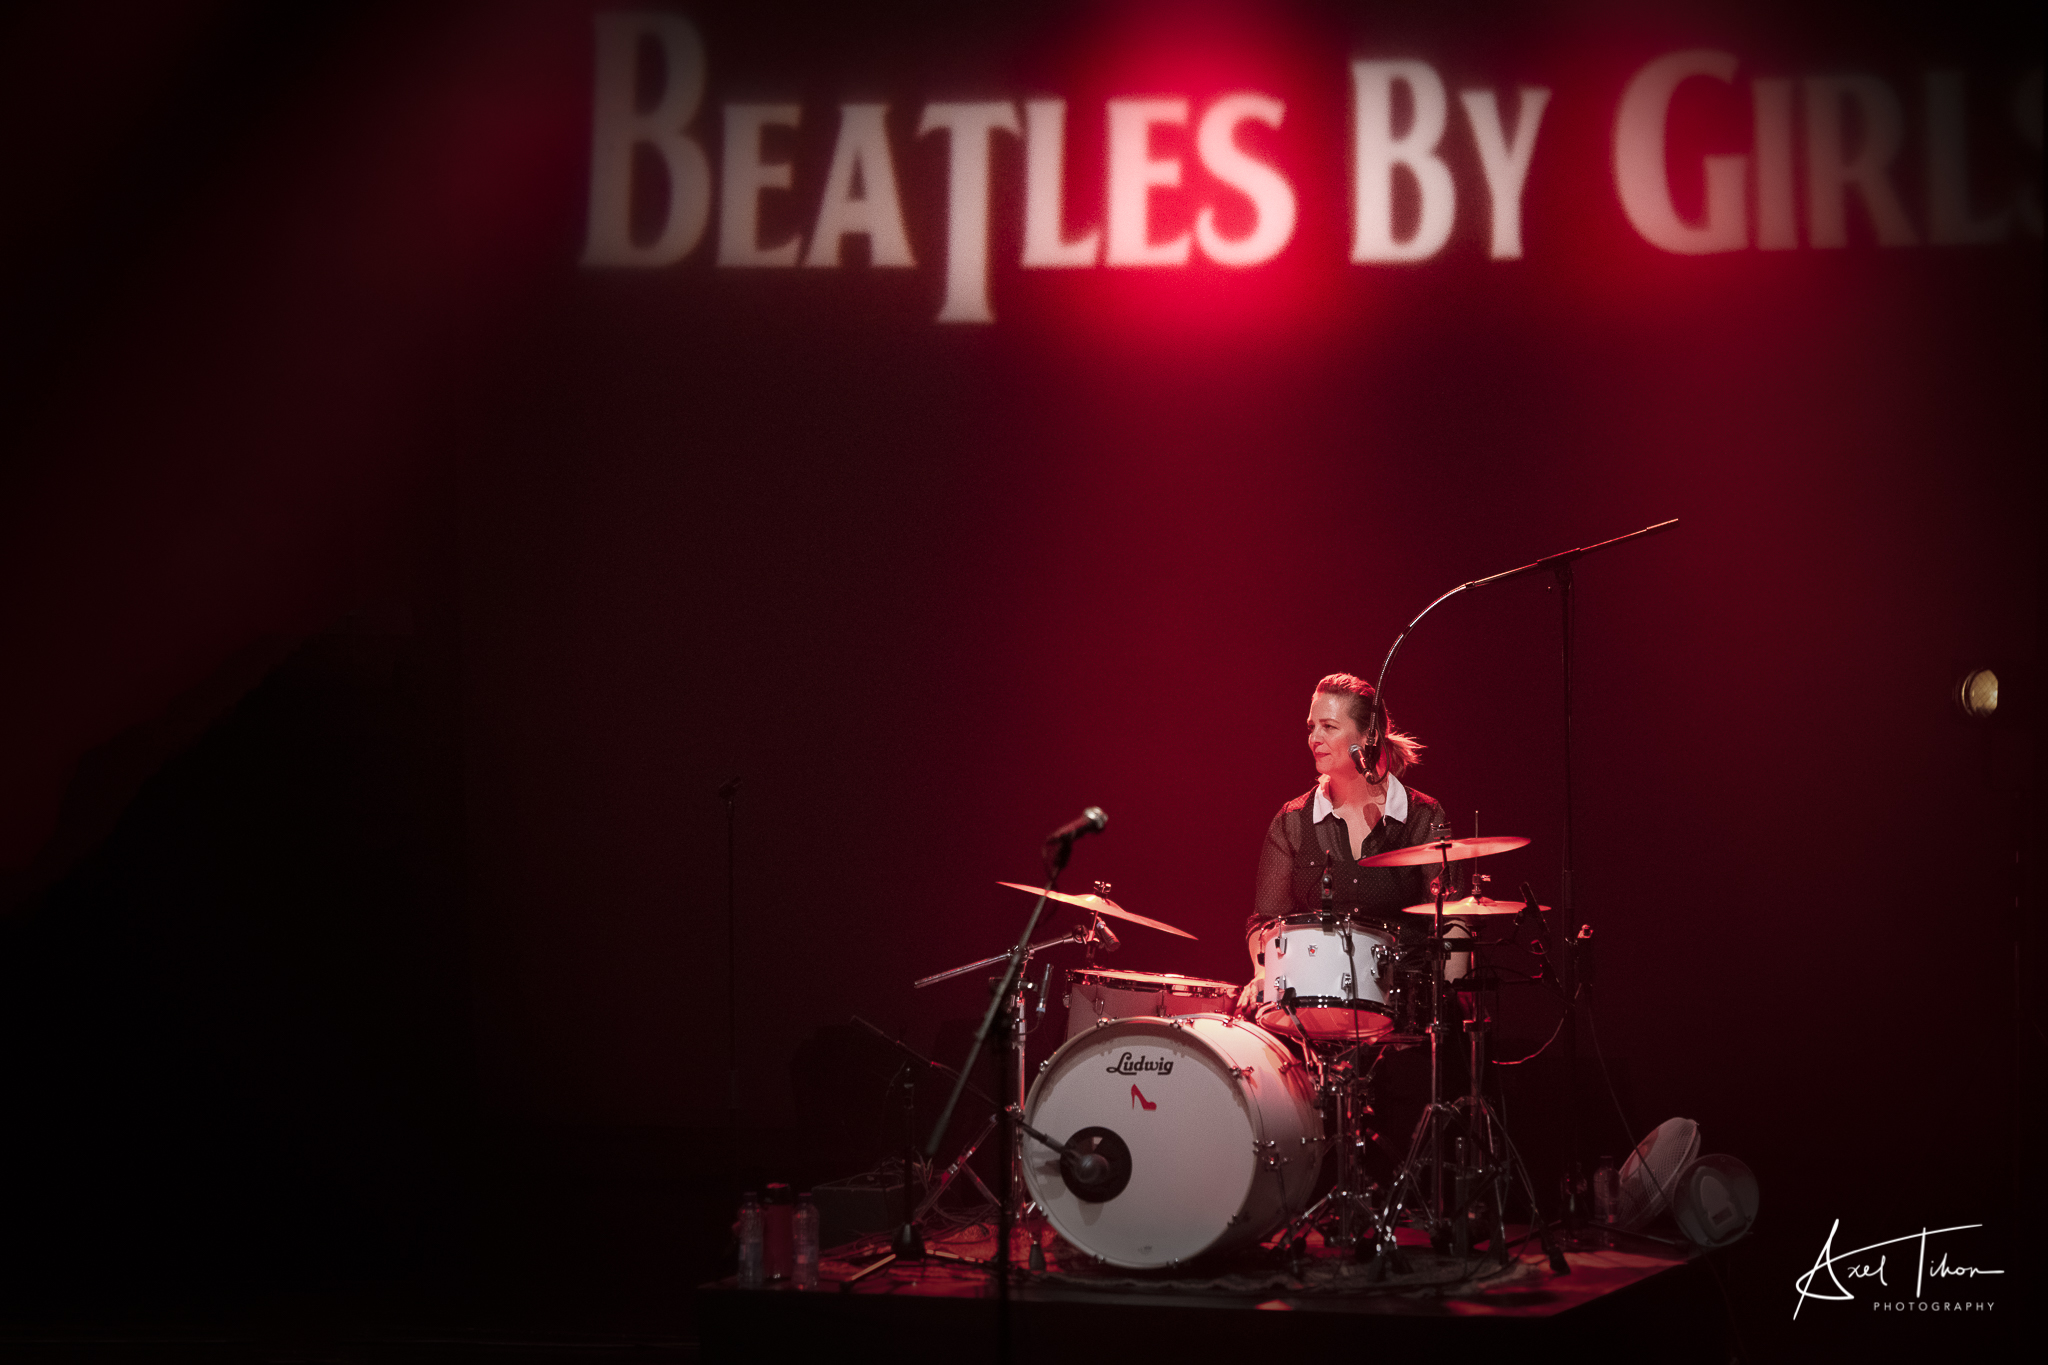 Beatles_by_Girls-14